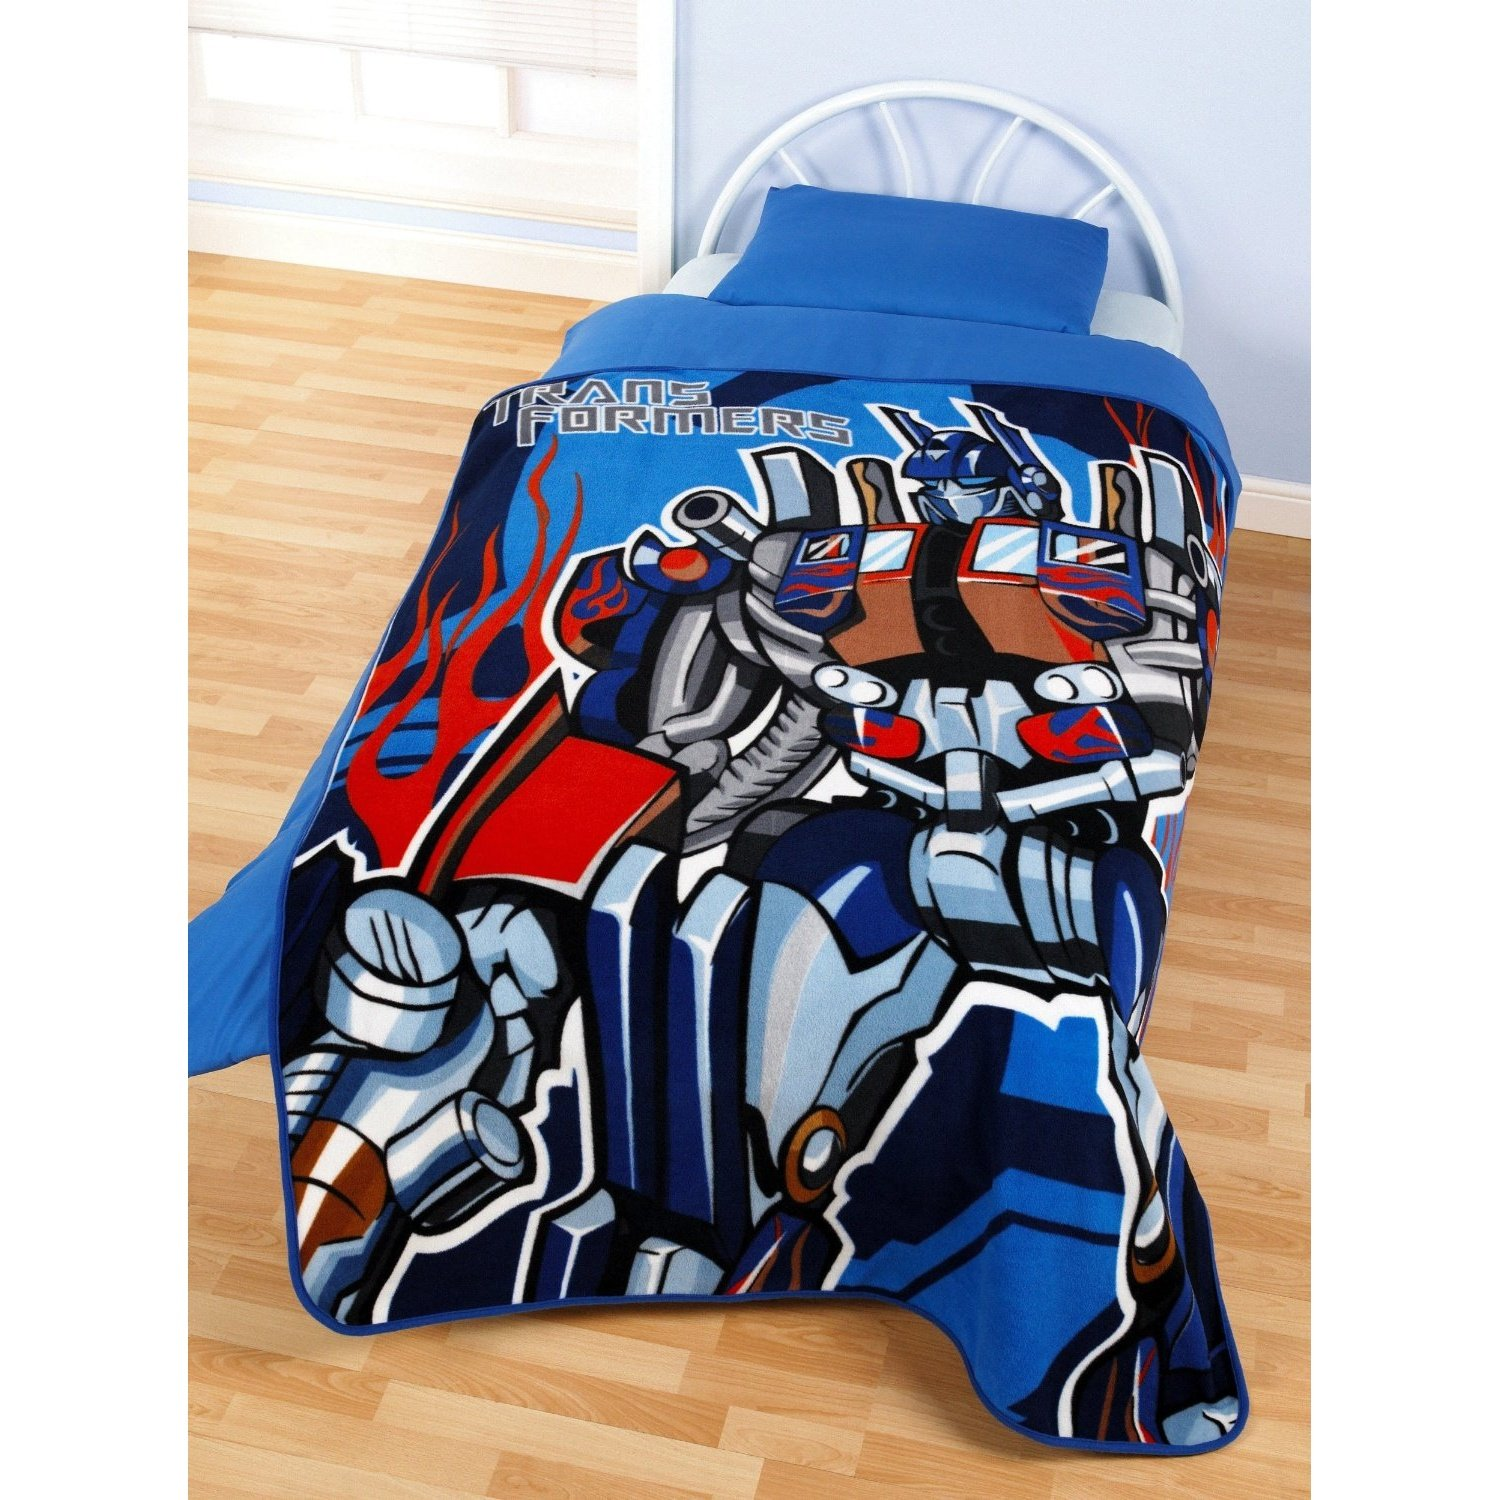 Children's Fleece Blanket in Transformers Design, blue, 125 x 150 cm Universaltextilien UTMS471_1